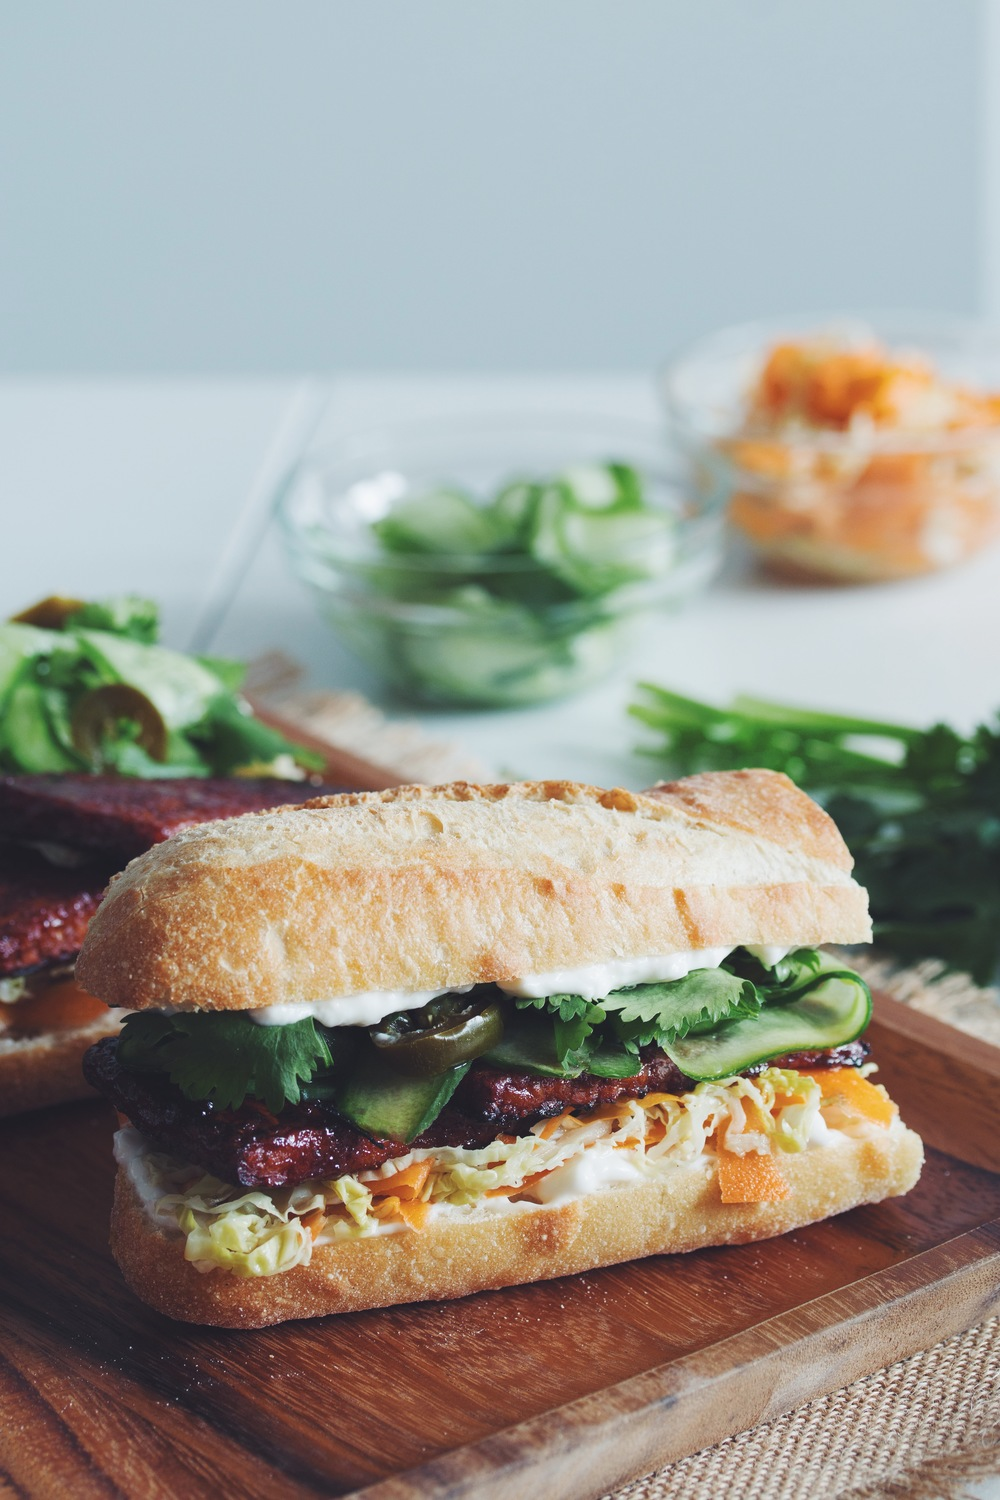 Smothered Tempeh Sandwich Smothered Tempeh Sandwich new photo